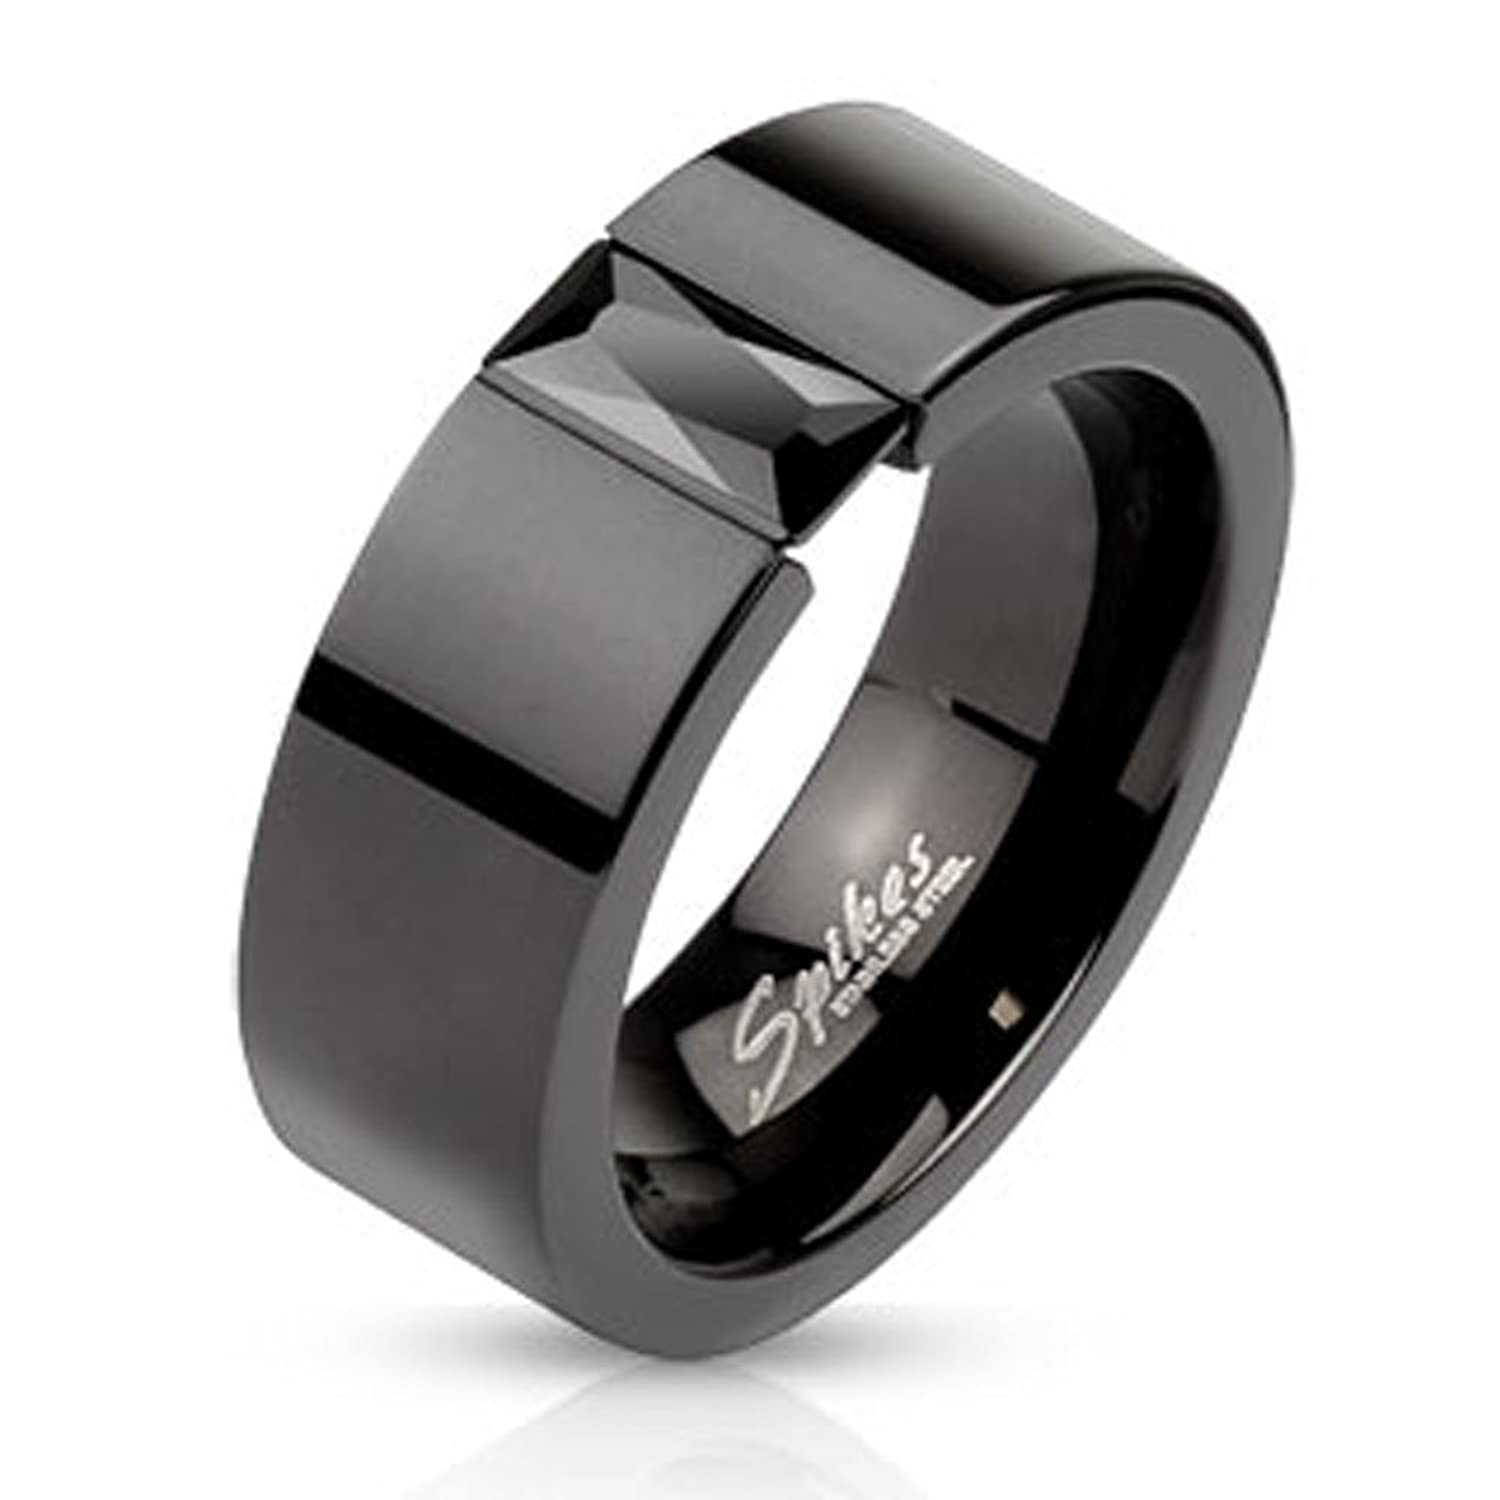 rings band bling black ring lords stainless spinner sgd padre steel nuestro prayer jewelry